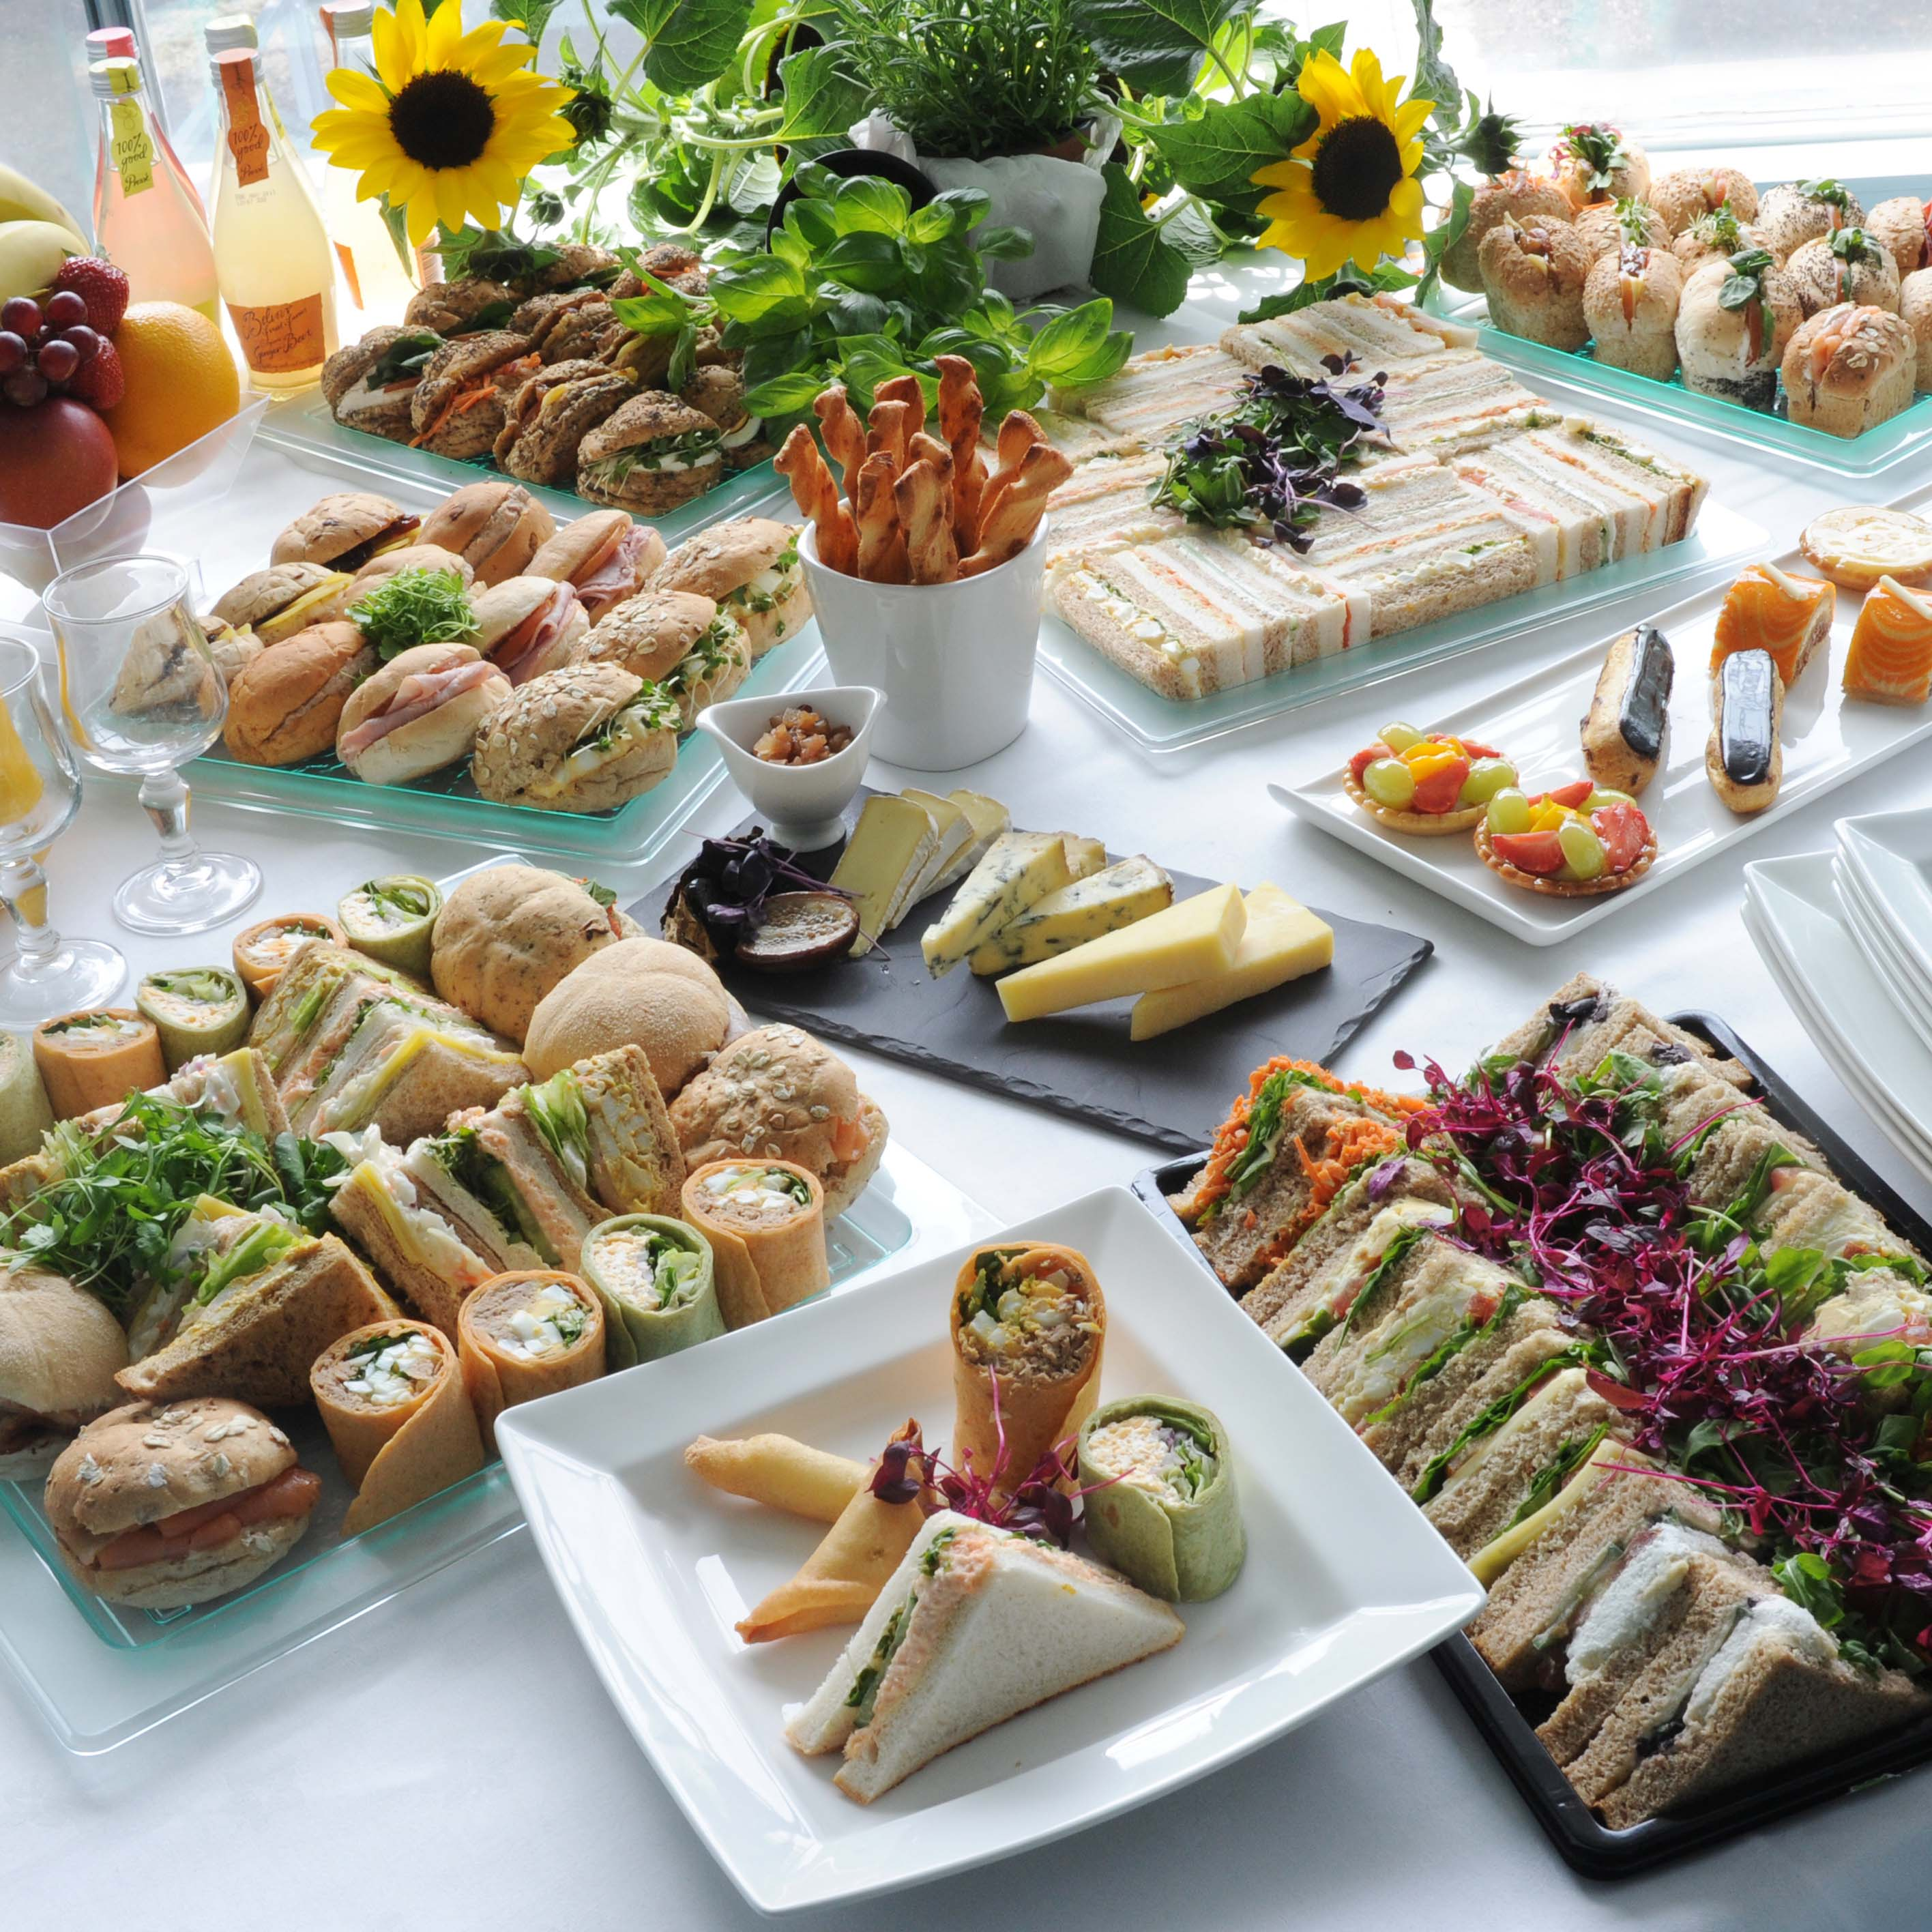 Catering-hospitality-food